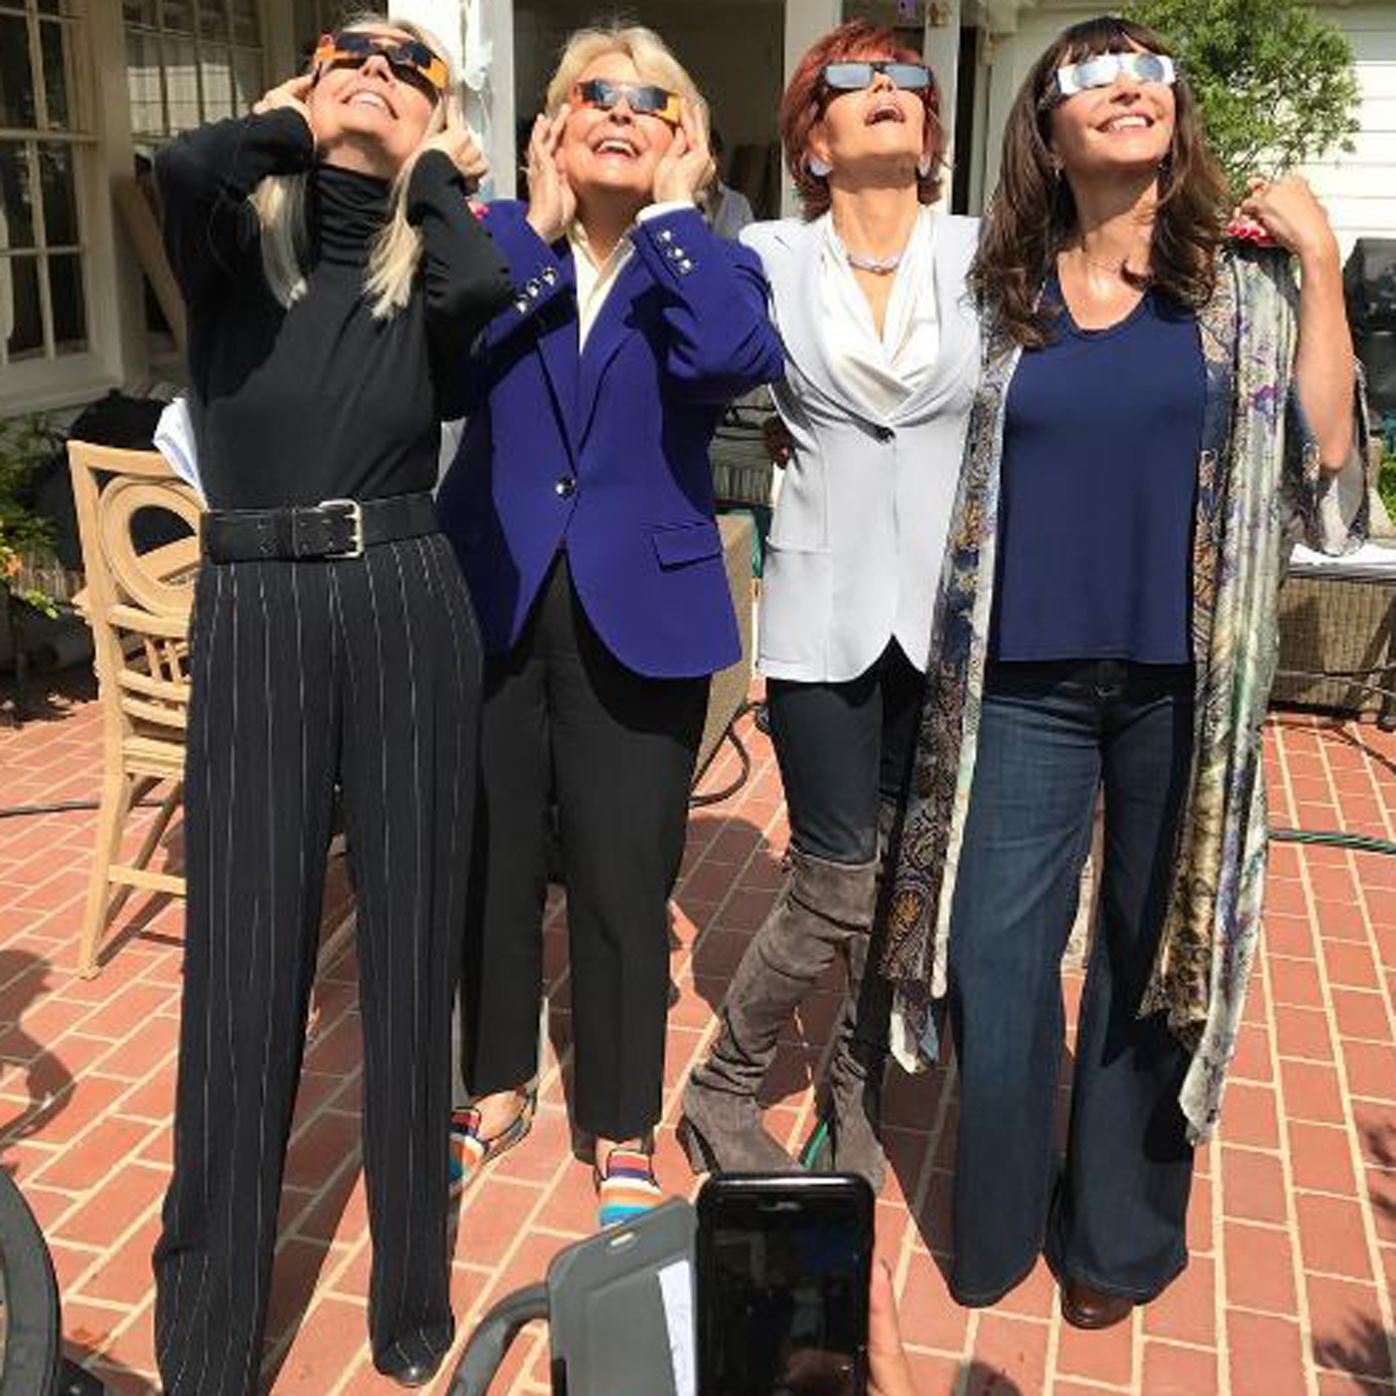 Candice Bergen, 71, Jane Fonda, 79, Diane Keaton, 71, and Mary Steenburgen, 64, have more in common than their upcoming movie <em>Book Club</em>.<br /> These four women who gathered together to watch the solar eclipse in the northern hemisphere have all discovered the enduring appeal of a well-cut blazer. Bergen posted the fun photograph to her Instagram account.<br /> Trim tailoring and some serious structure is a wardrobe staple for nights on the town or mornings in the office.<br /> The going out blazer has made a return thanks to Balmain but for these actresses it never really went away. <br /> Take it from the experts, who play women reading 50 Shades of Grey in their book club in the upcoming comedy, to see how a blazer is light years ahead of boleros and belted trench-coats when it comes to versatility.